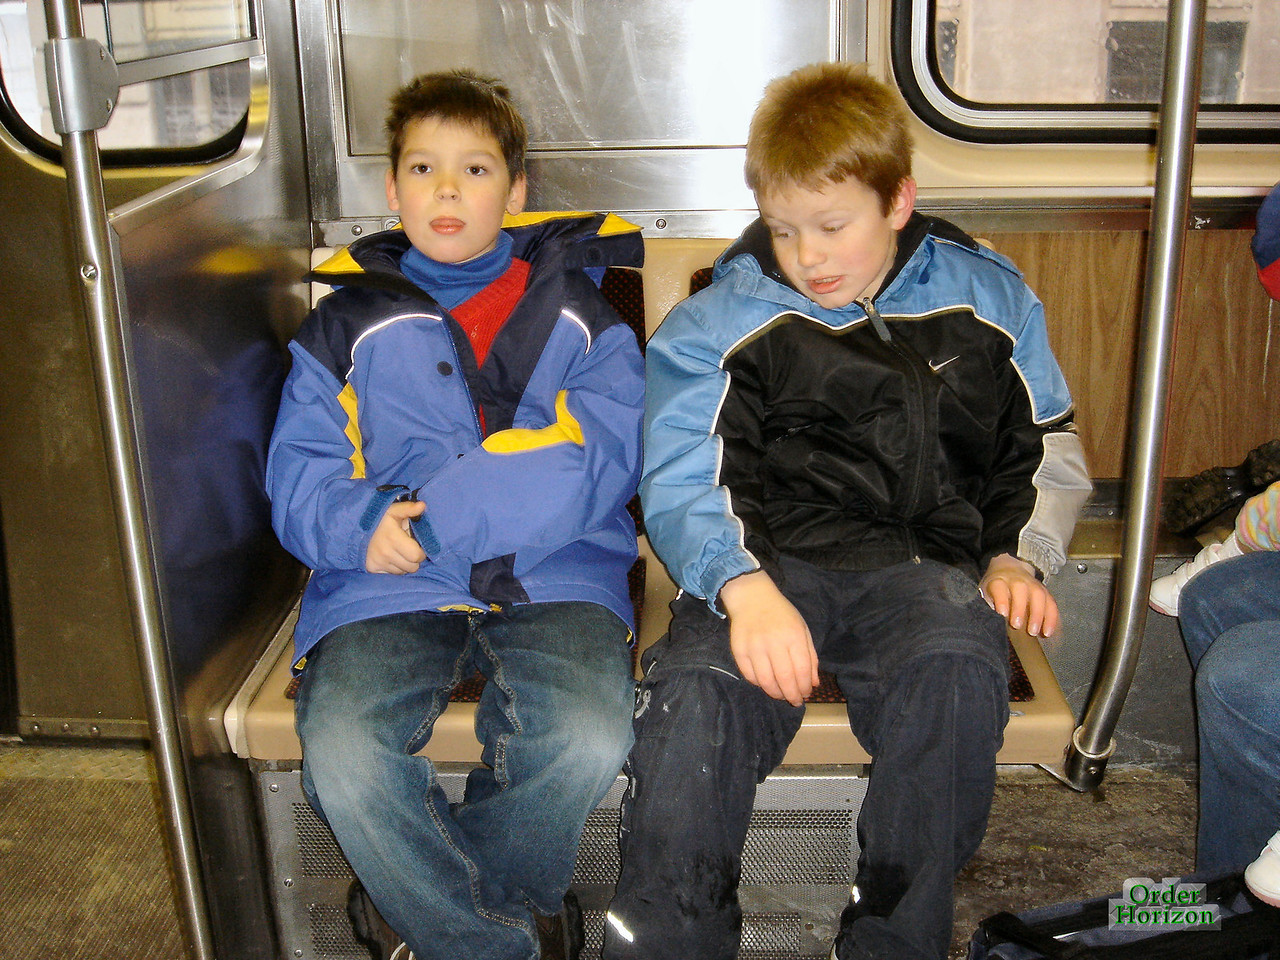 Some thugs we saw on the subway